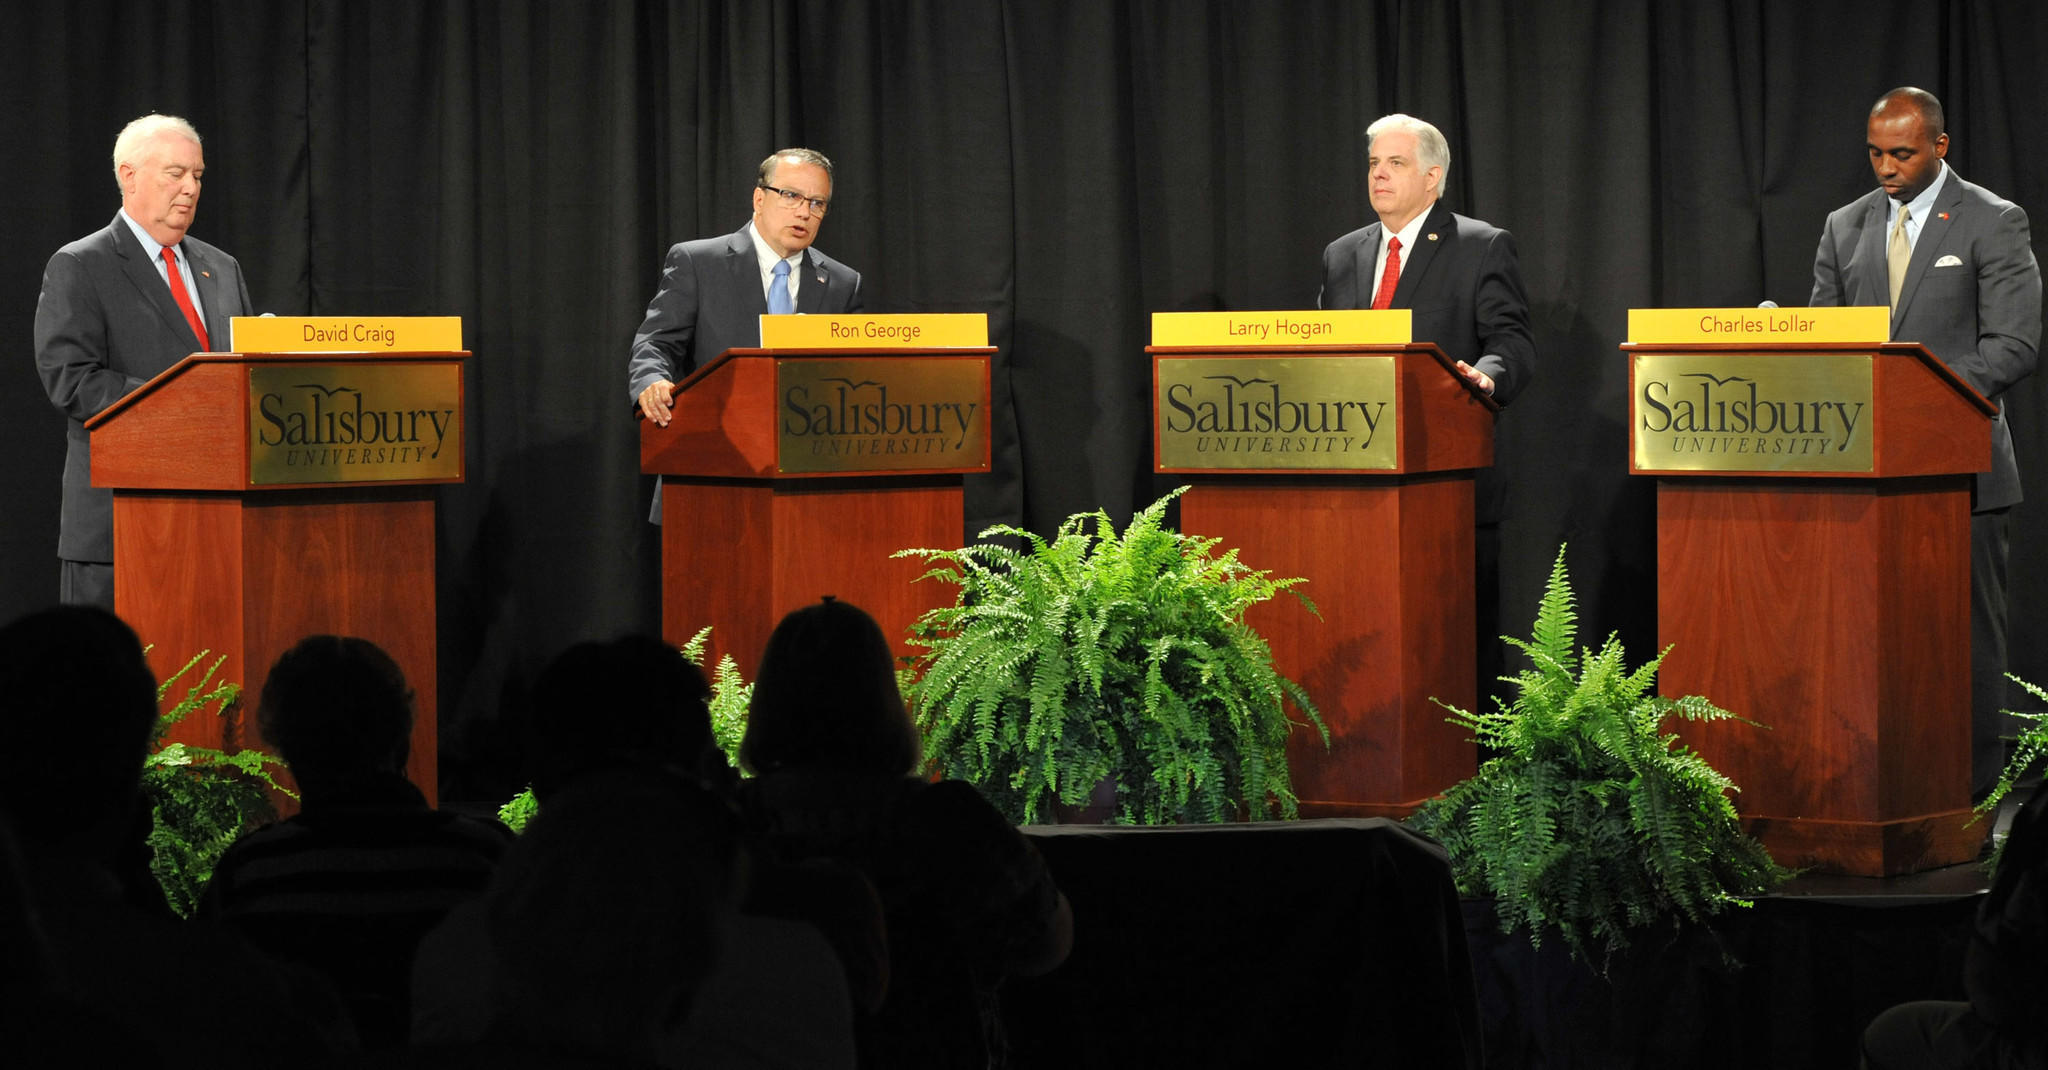 GOP gubernatorial candidates, from left, David R. Craig, Ron George, Larry Hogan and Charles Lollar face off in a debate at Salisbury University.